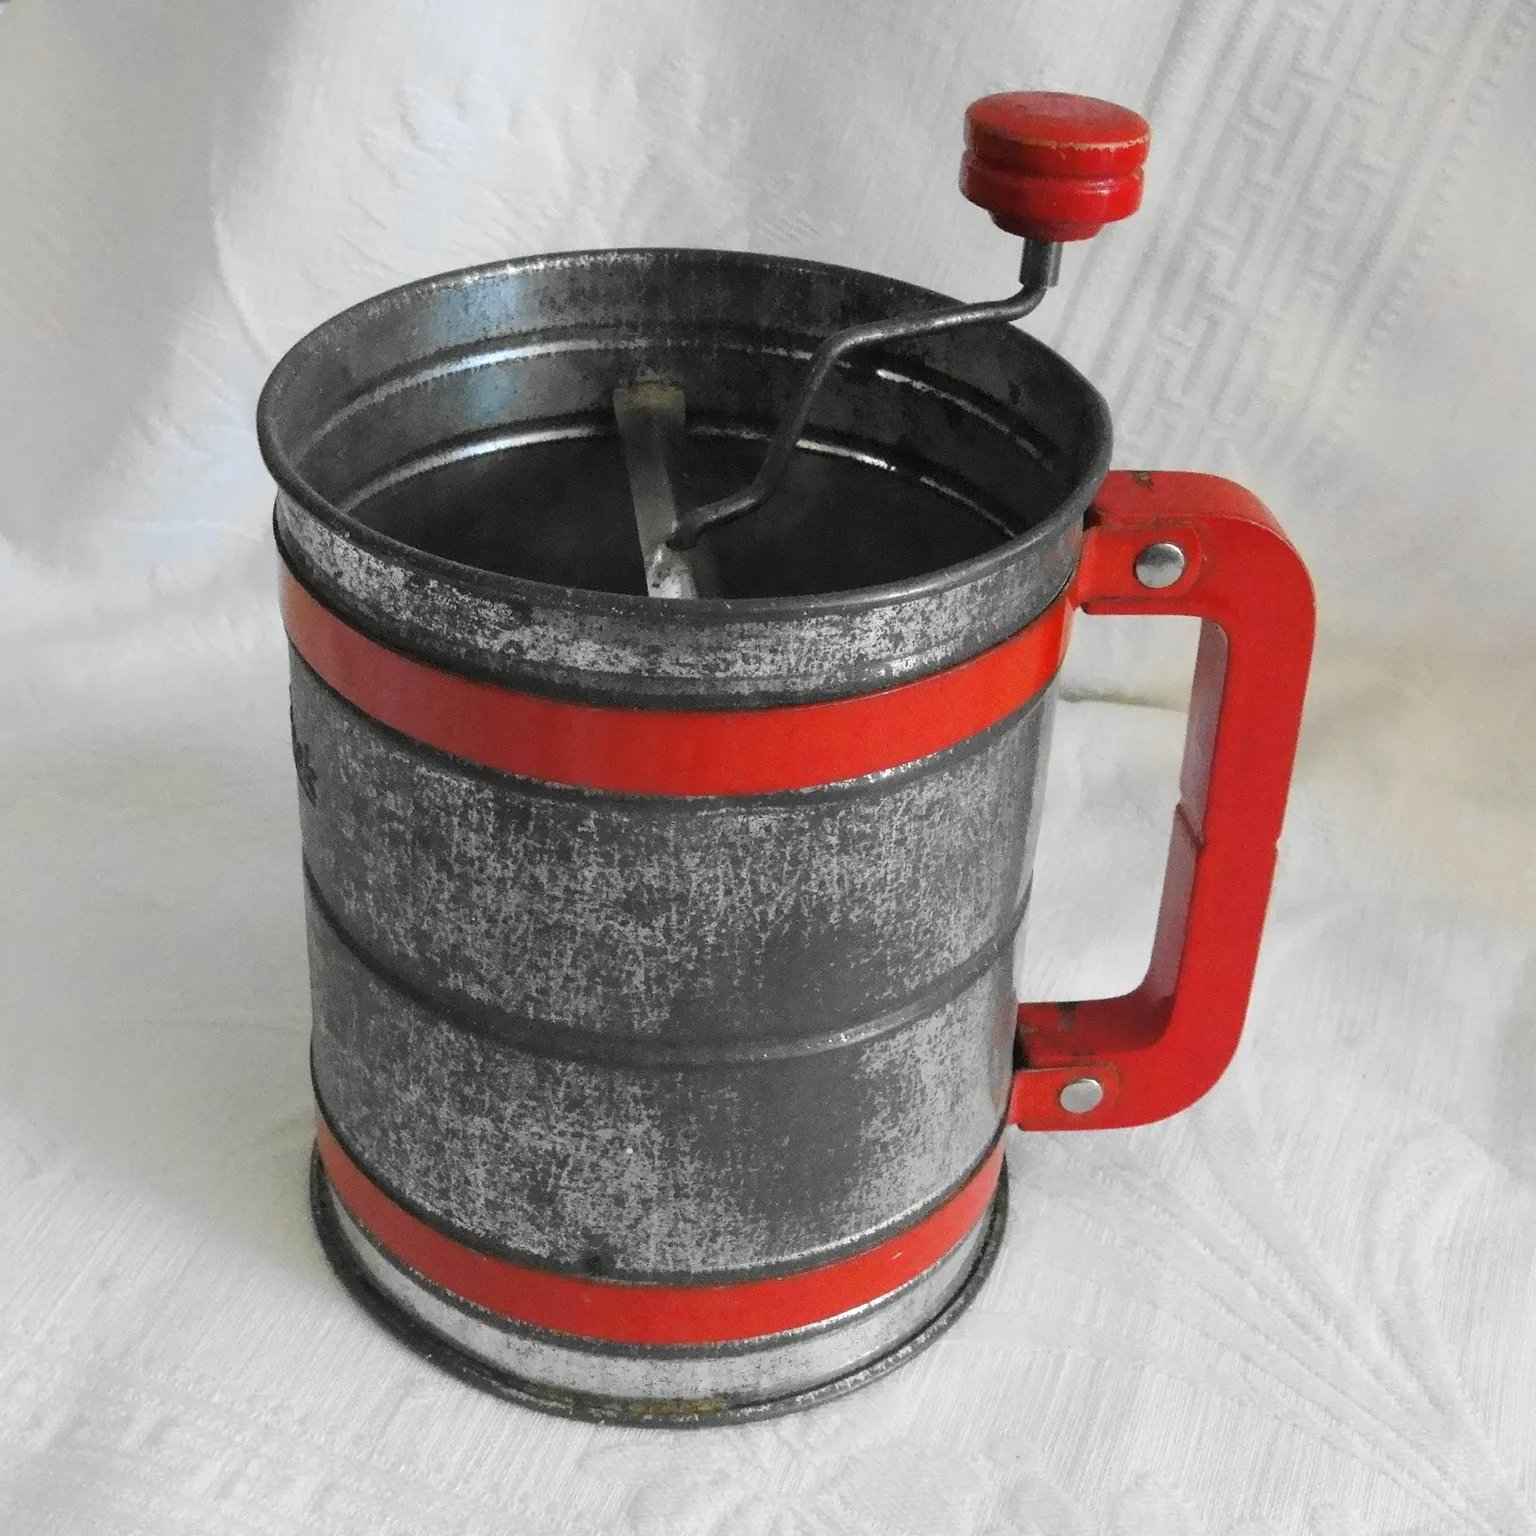 Vintage Tin Androck Kitchen Flour Sifter With Bright Red